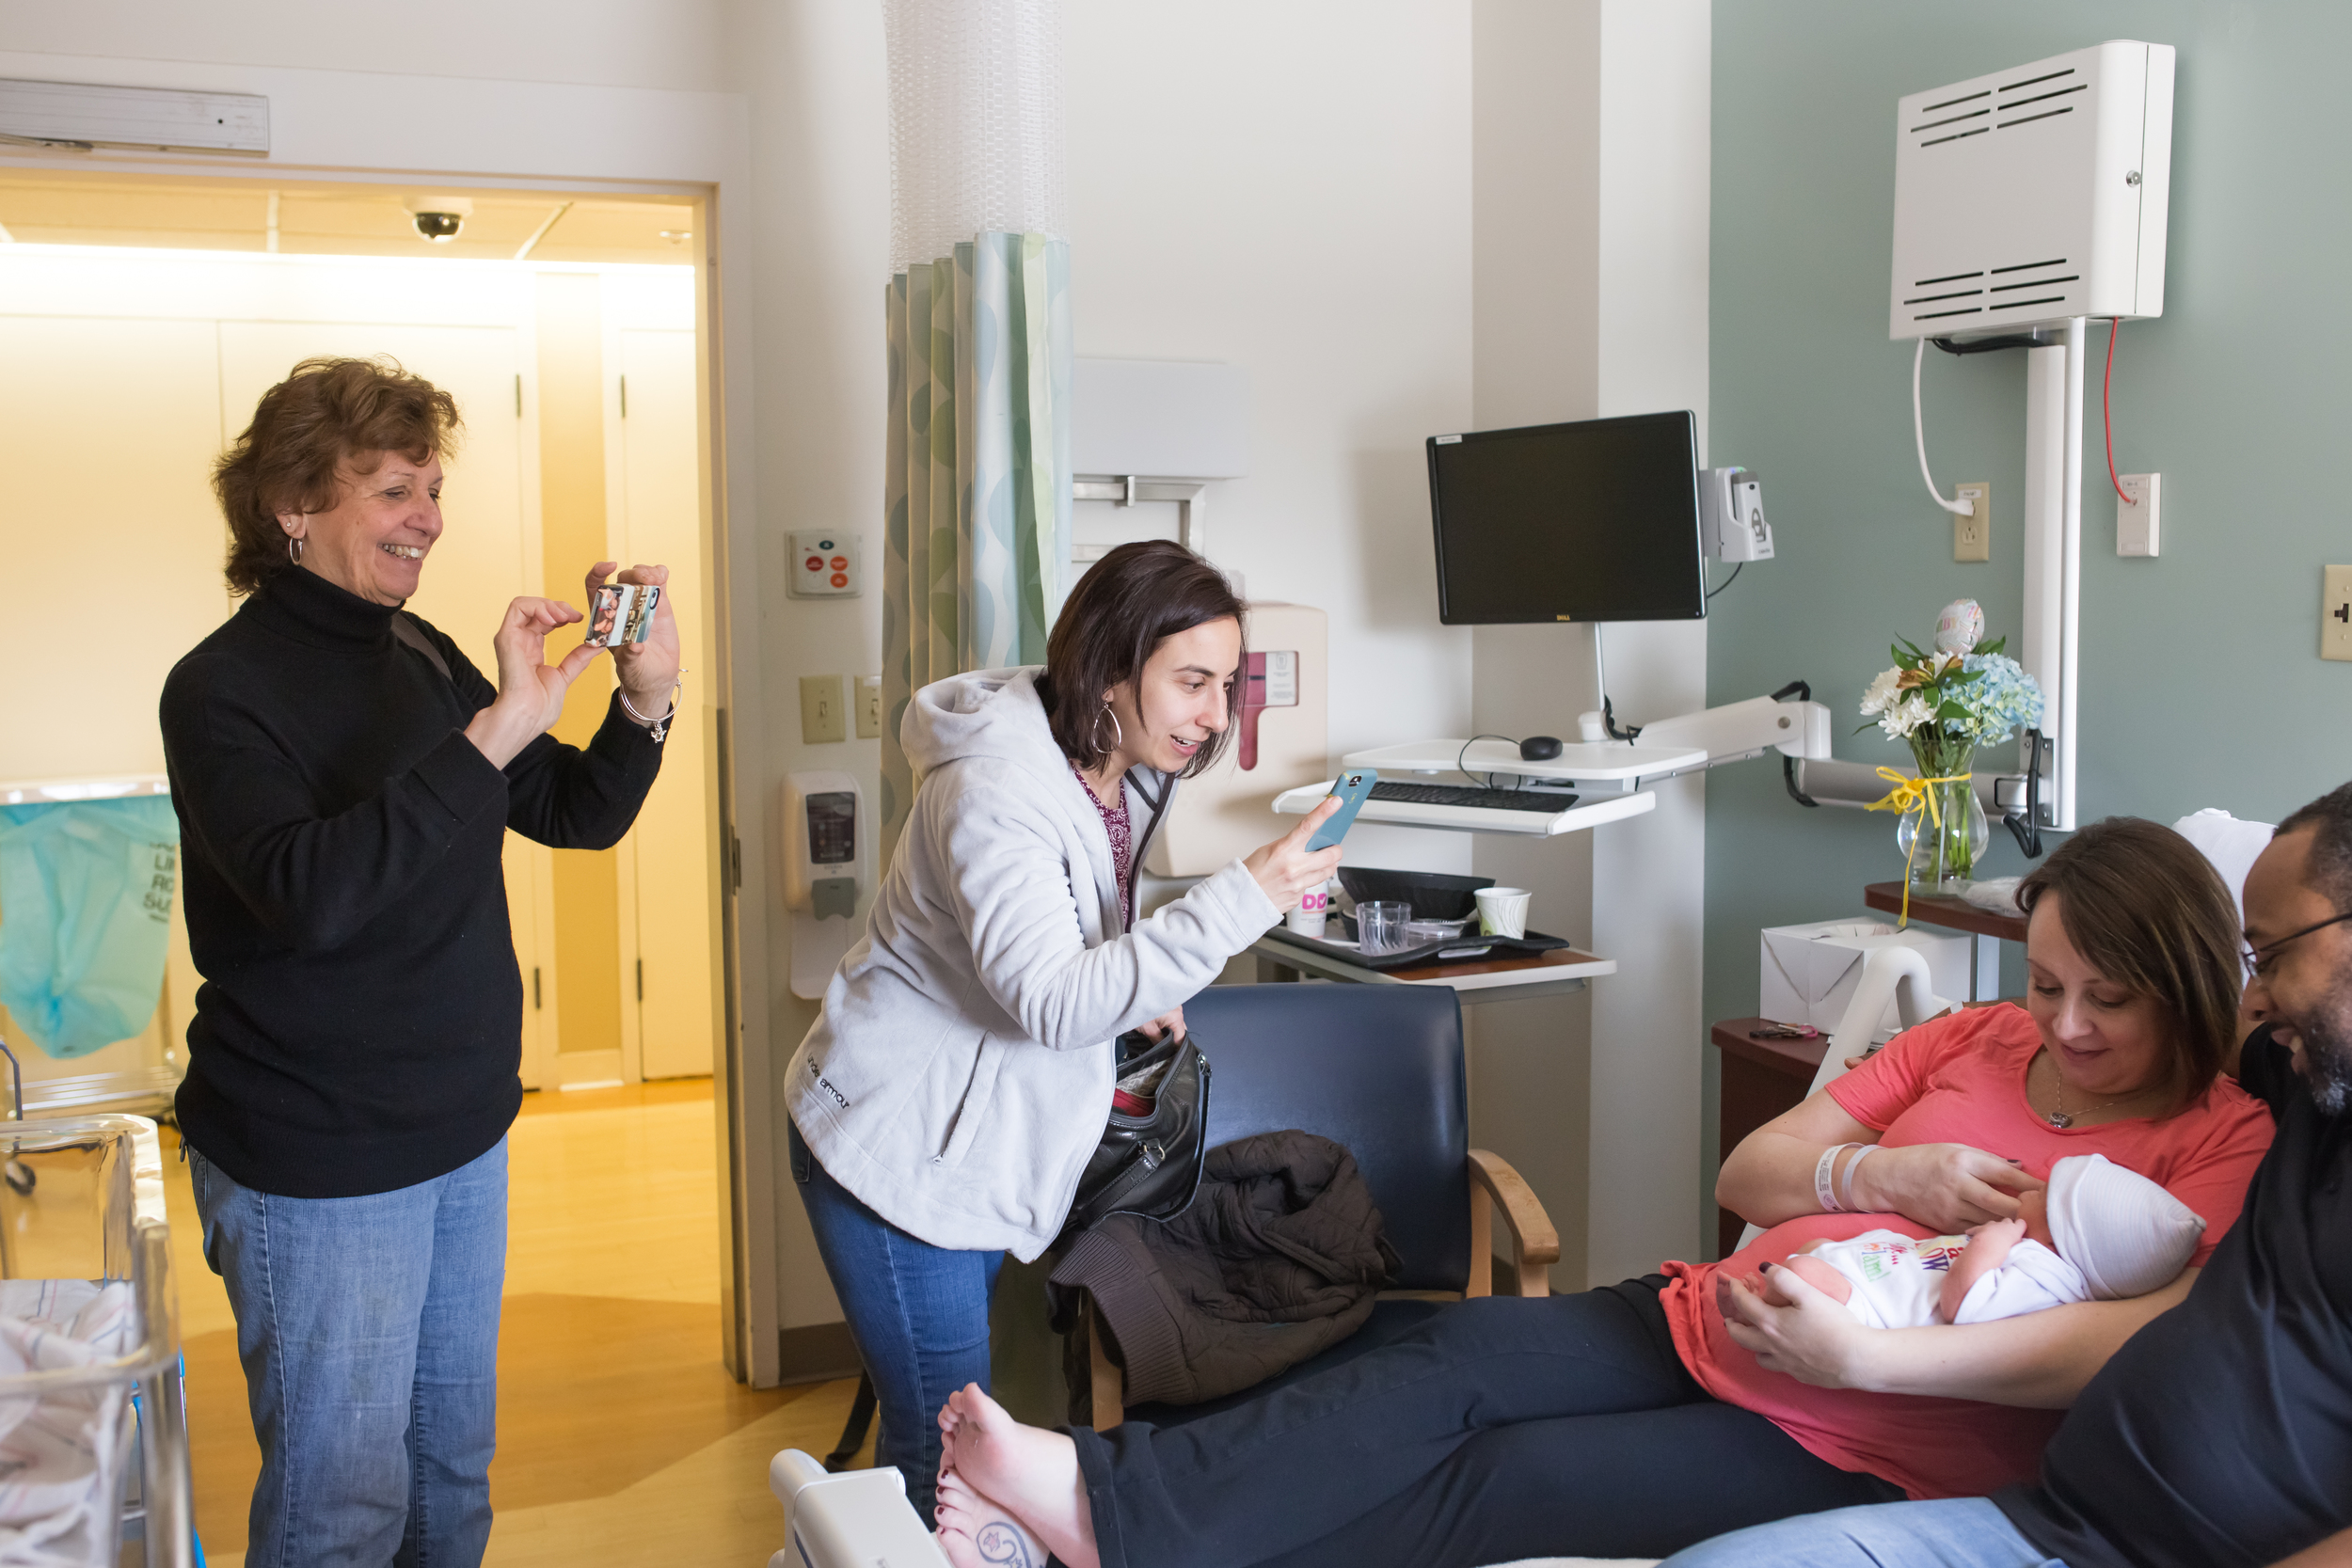 Mom and family taking photos of new baby in Boston Massachusetts during Fresh 48 session